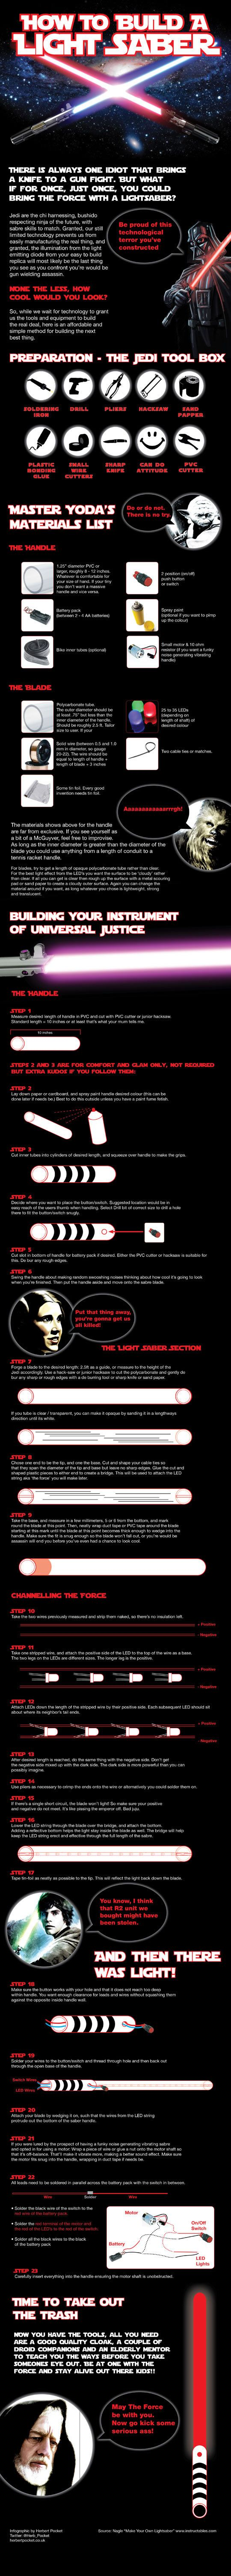 #INFOGRAPHIC: HOW TO MAKE YOUR OWN LIGHTSABER